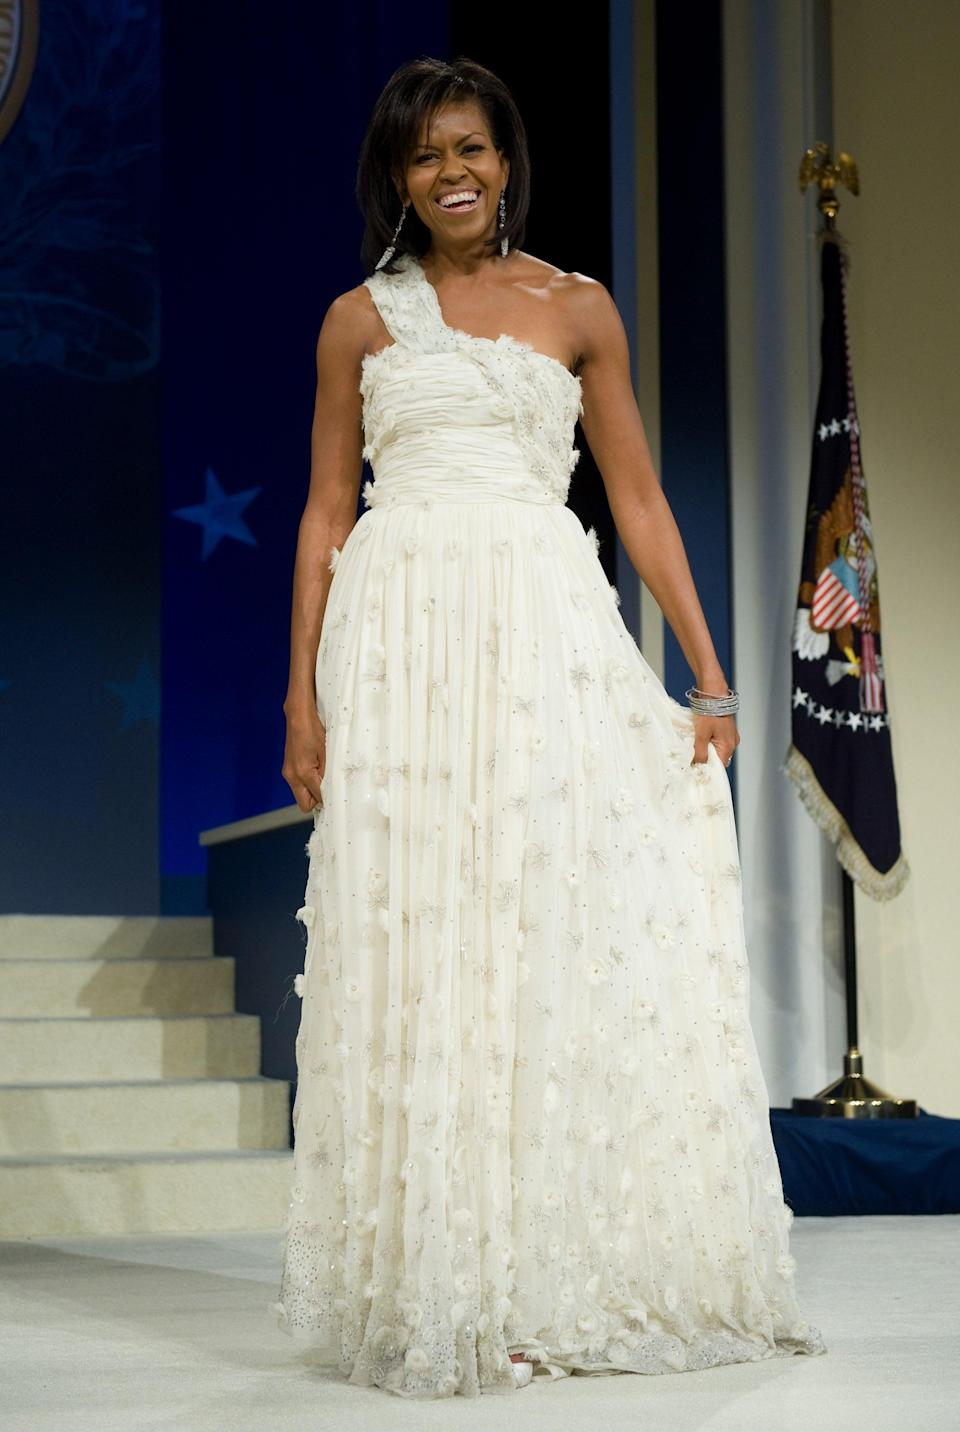 For her debut Inauguration Ball, Michelle Obama wore a stunning chiffon Jason Wu gownAFP/Getty Images